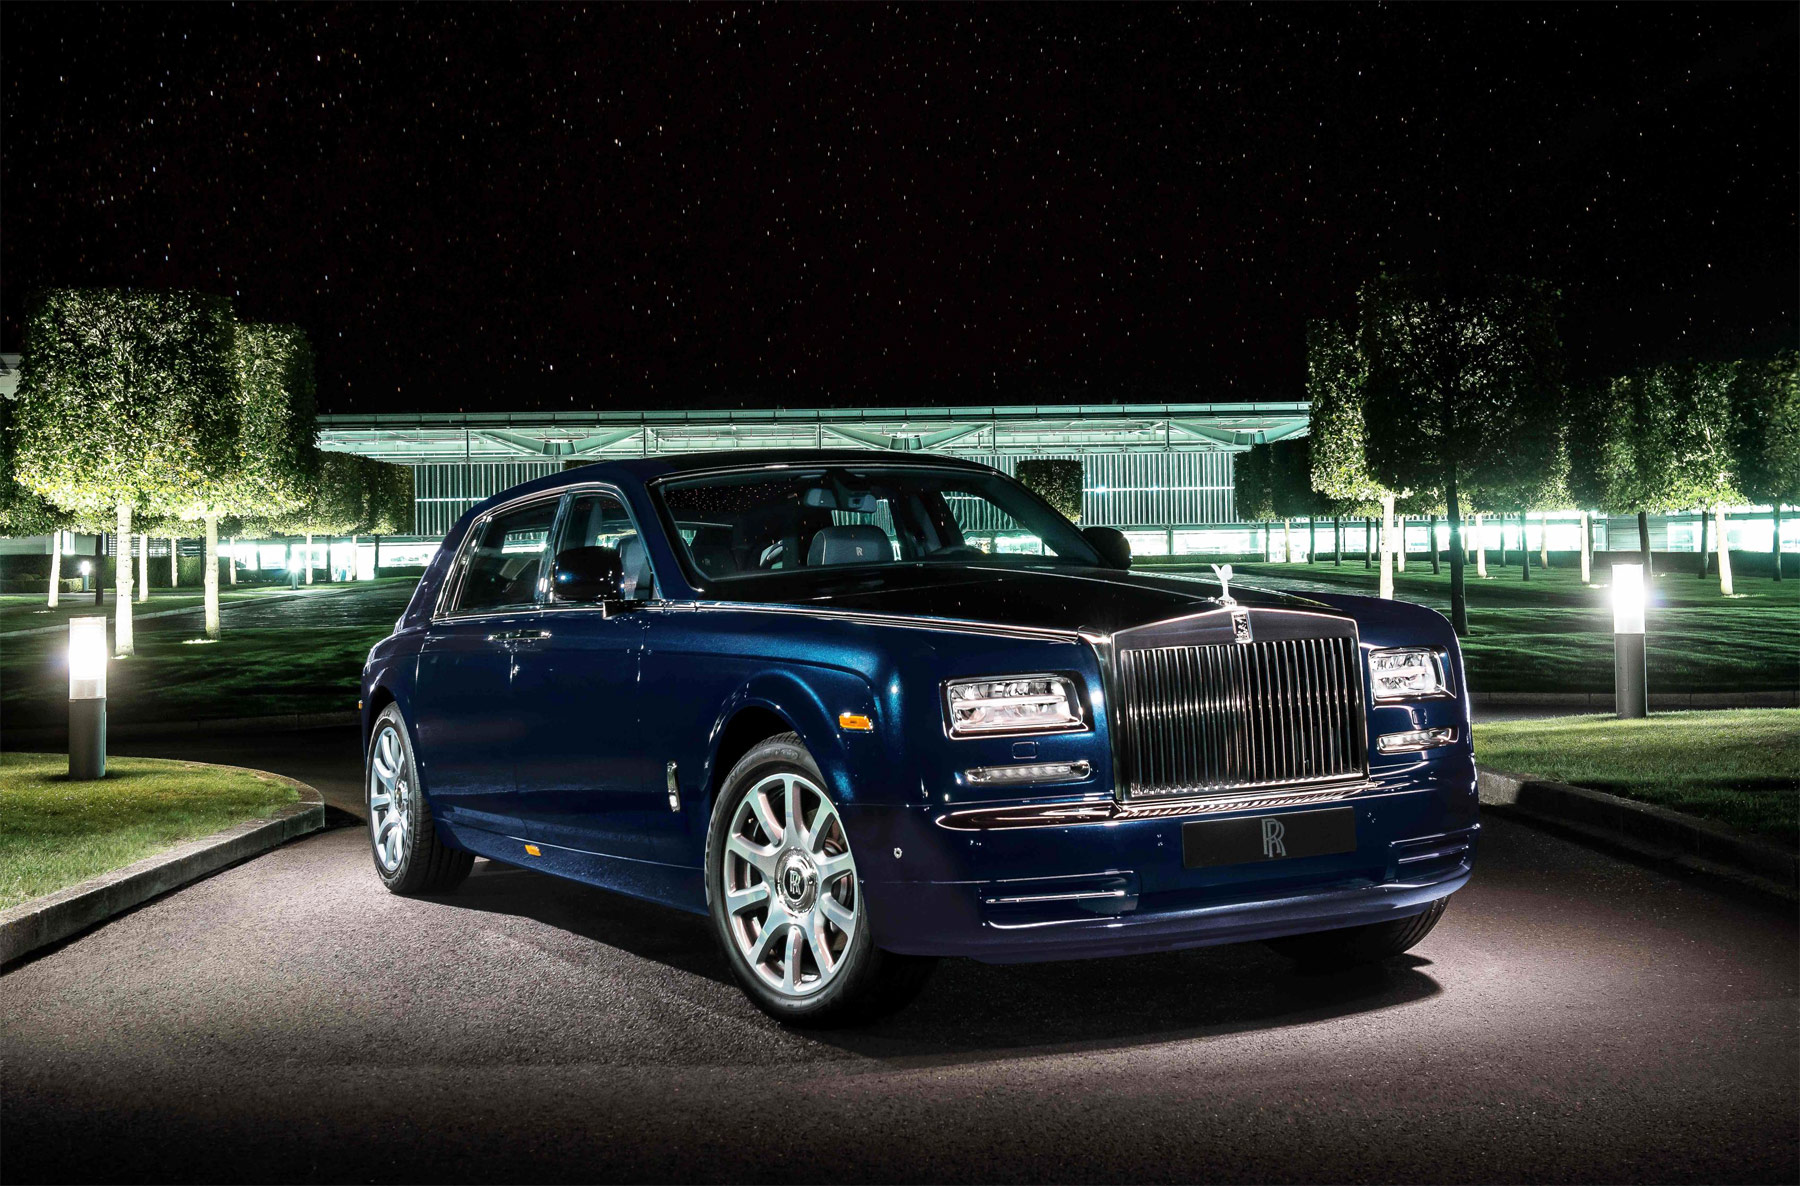 New Era For Rolls-Royce Commences As The Phantom VII Leaves The Stage